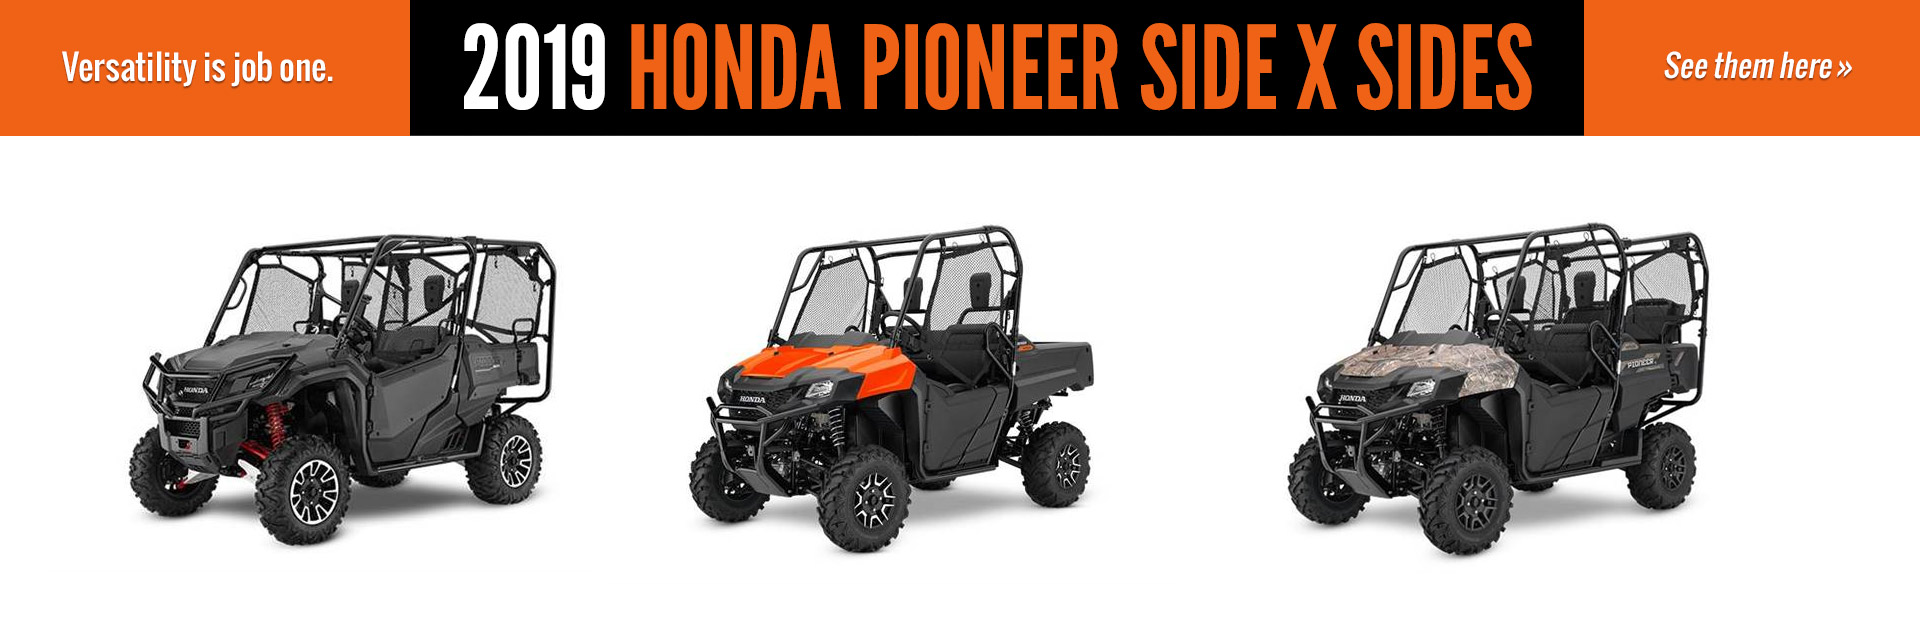 Honda Motorcycles Parts Service Dreyer Indianapolis In 2006 70cc Dirt Bike 2019 Pioneer Side X Sides Click Here To View The Models